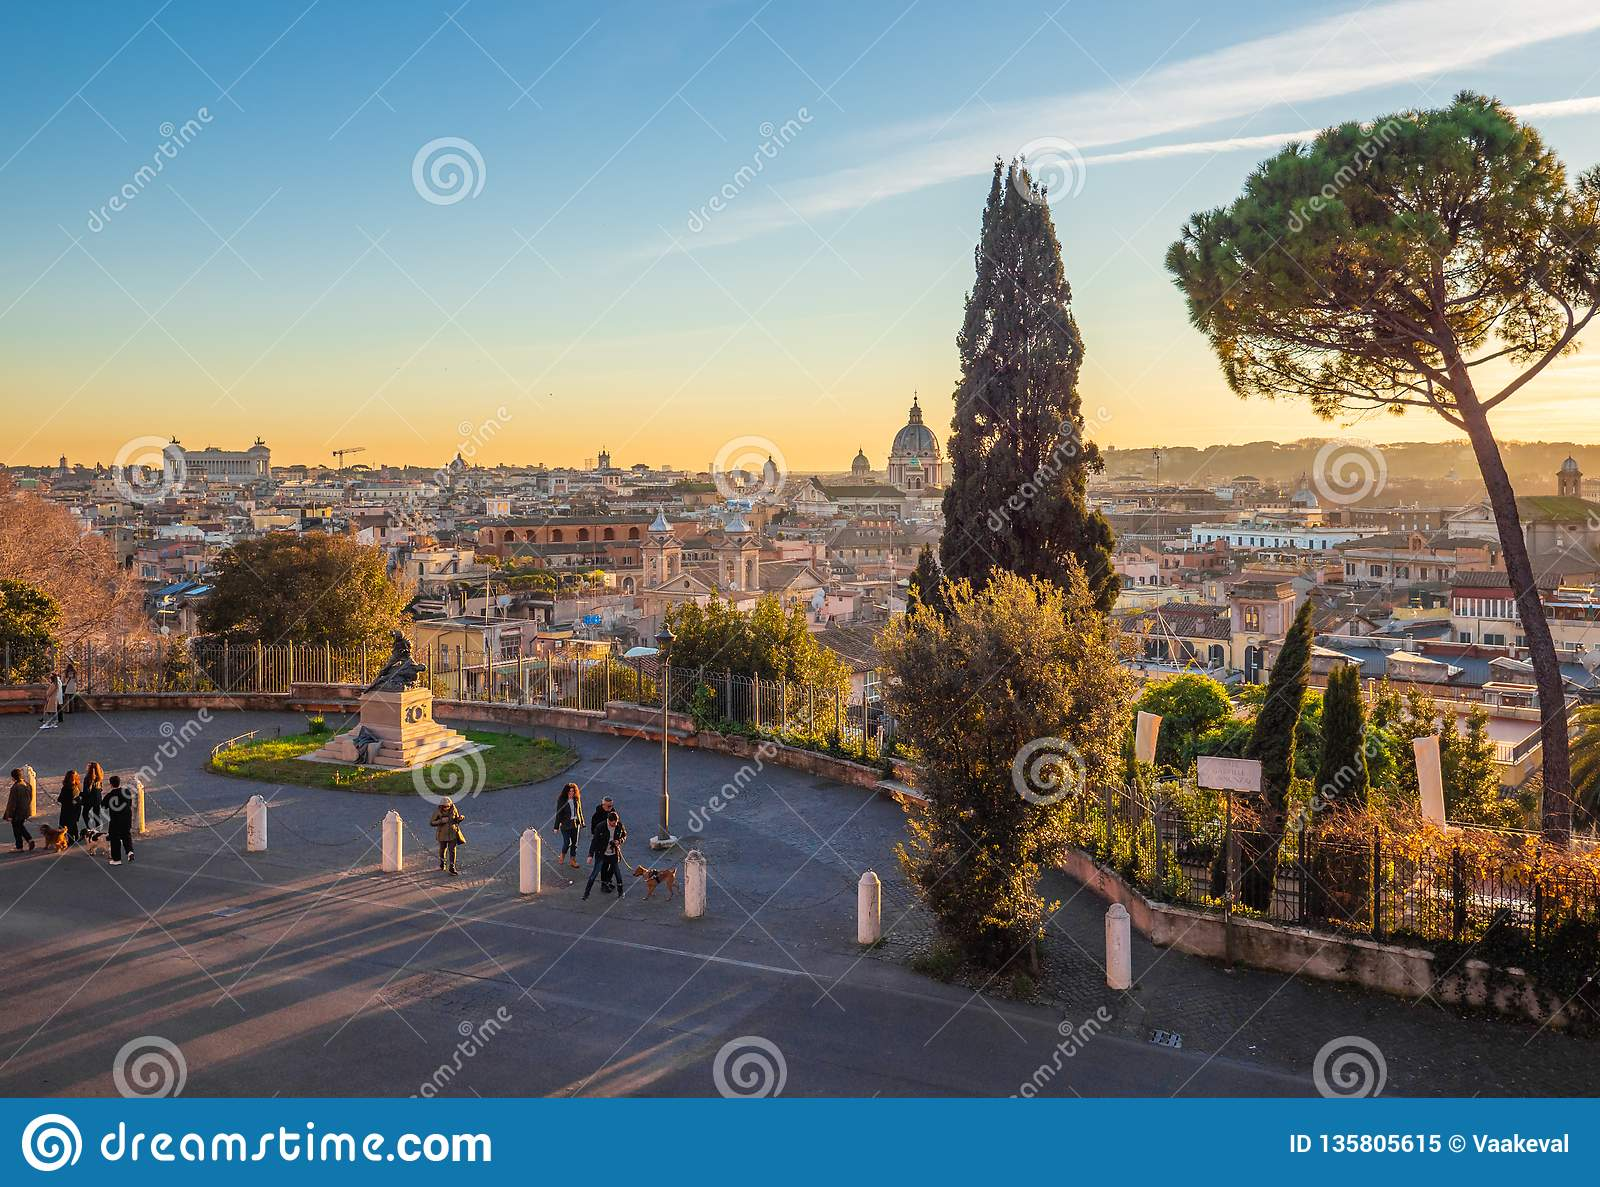 Rome Italy The Villa Borghese Park And Terrazza Del